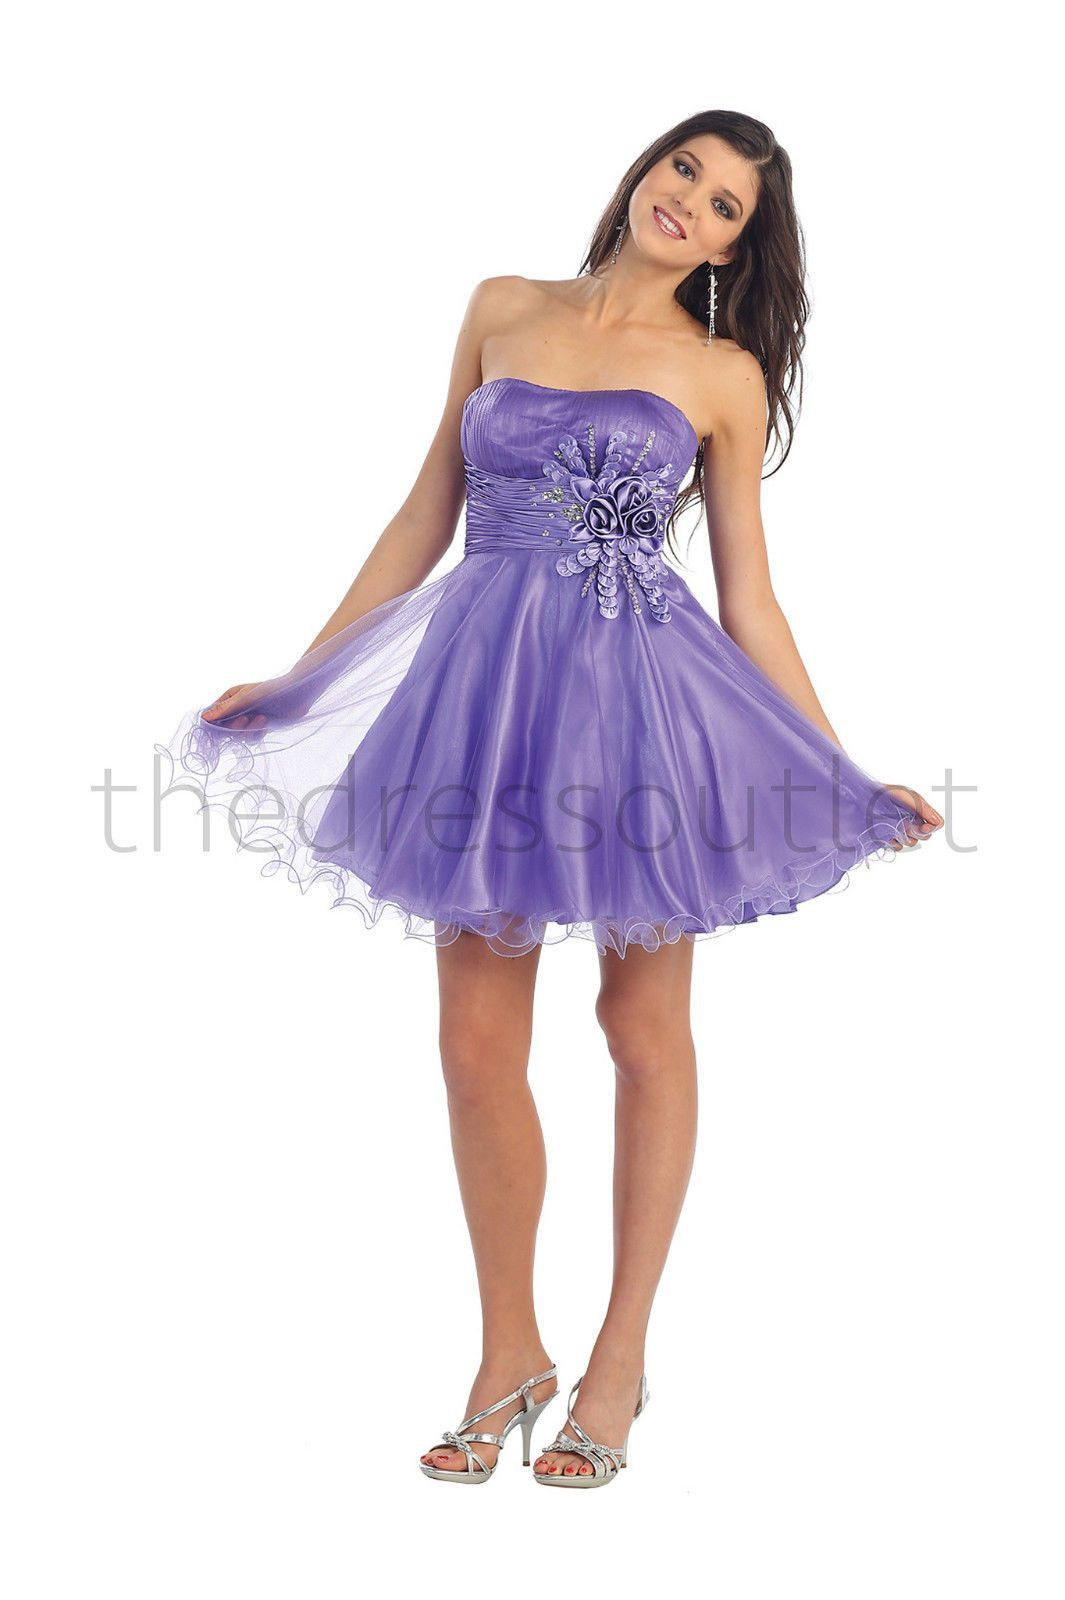 A strapless sweetheart dress with a waist sash is accented with a